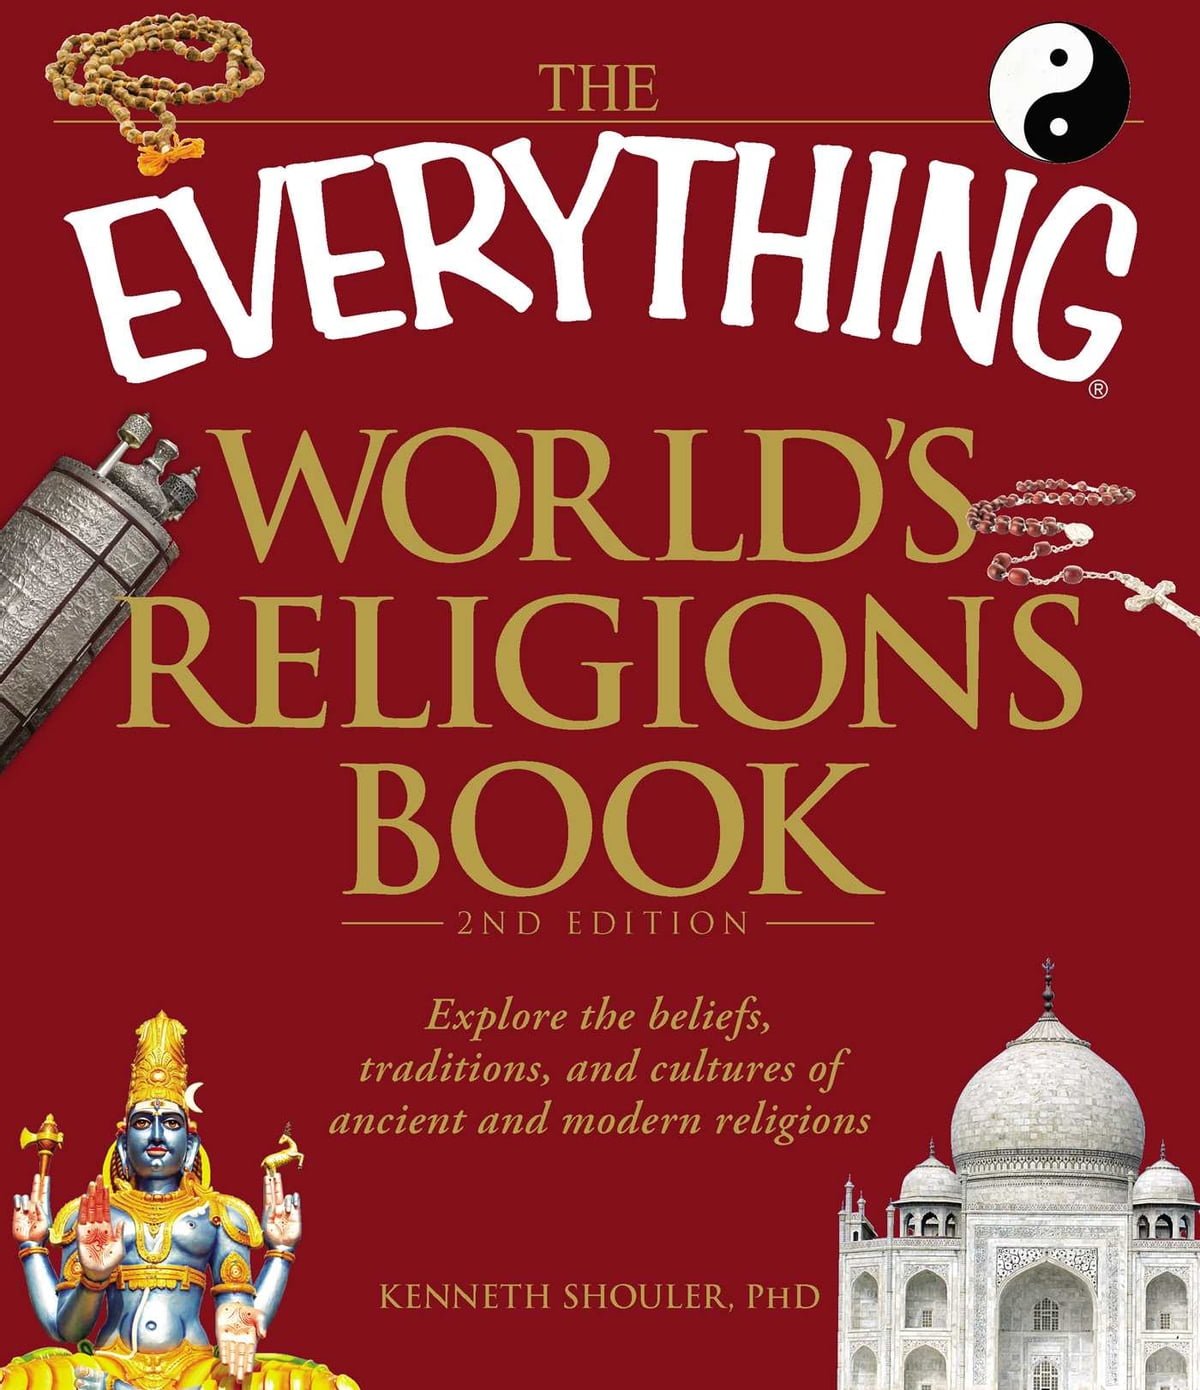 The everything worlds religions book ebook by kenneth shouler the everything worlds religions book ebook by kenneth shouler 9781440500374 rakuten kobo fandeluxe Choice Image